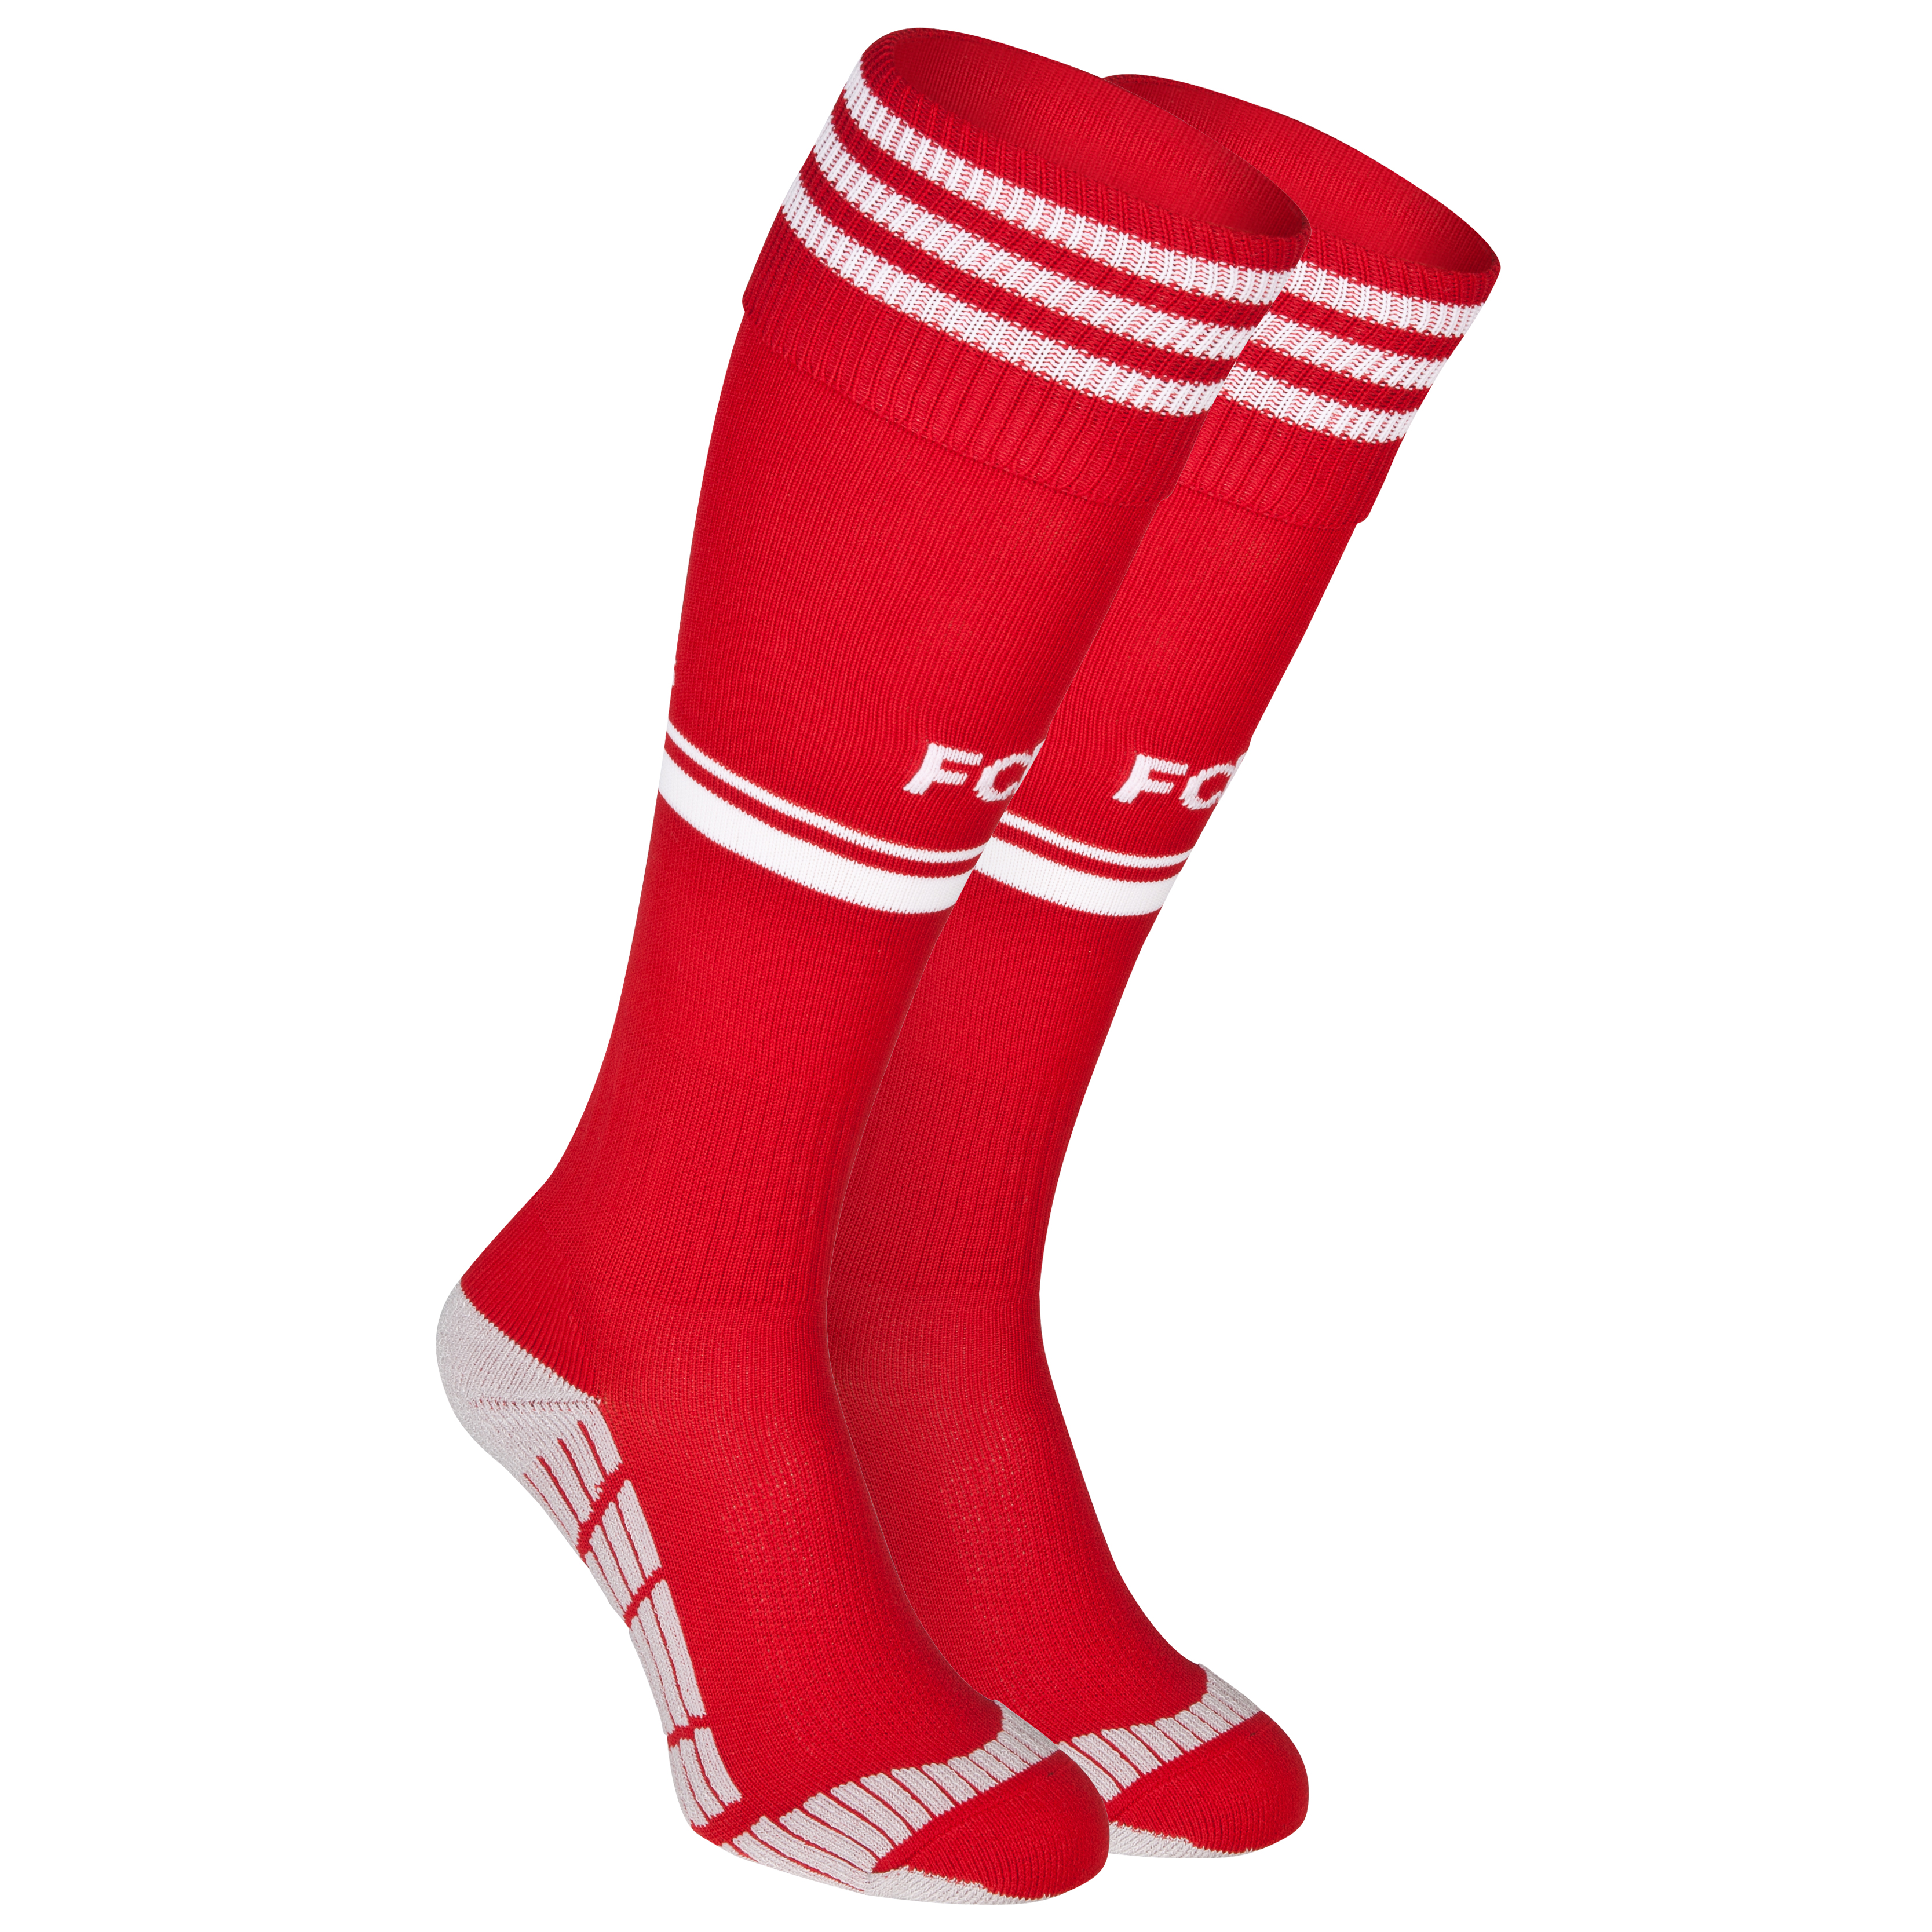 Bayern Munich Home Socks 2013/14